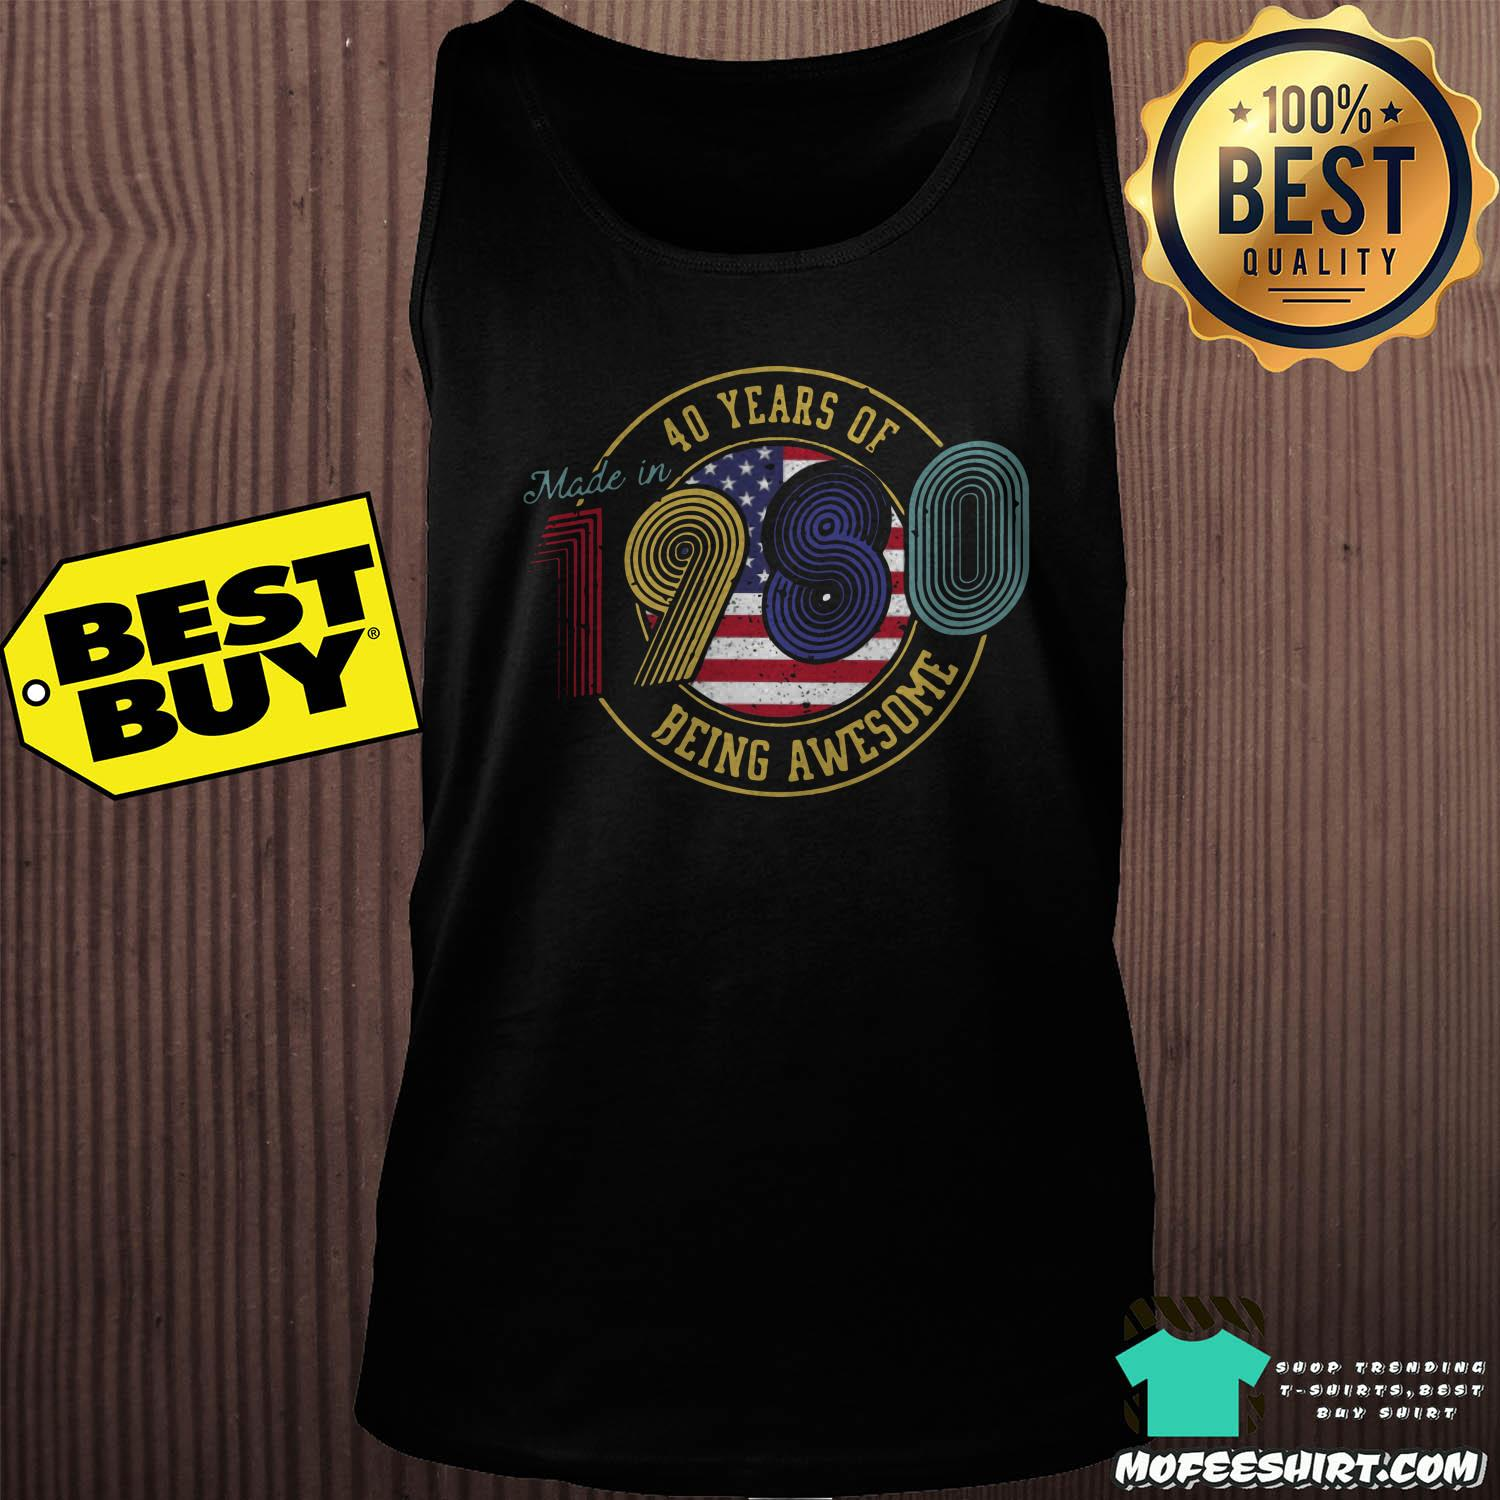 made in 40 years of 1980 being awesome american vintage tank top - Made in 40 Years Of 1980 Being Awesome American Vintage Shirt